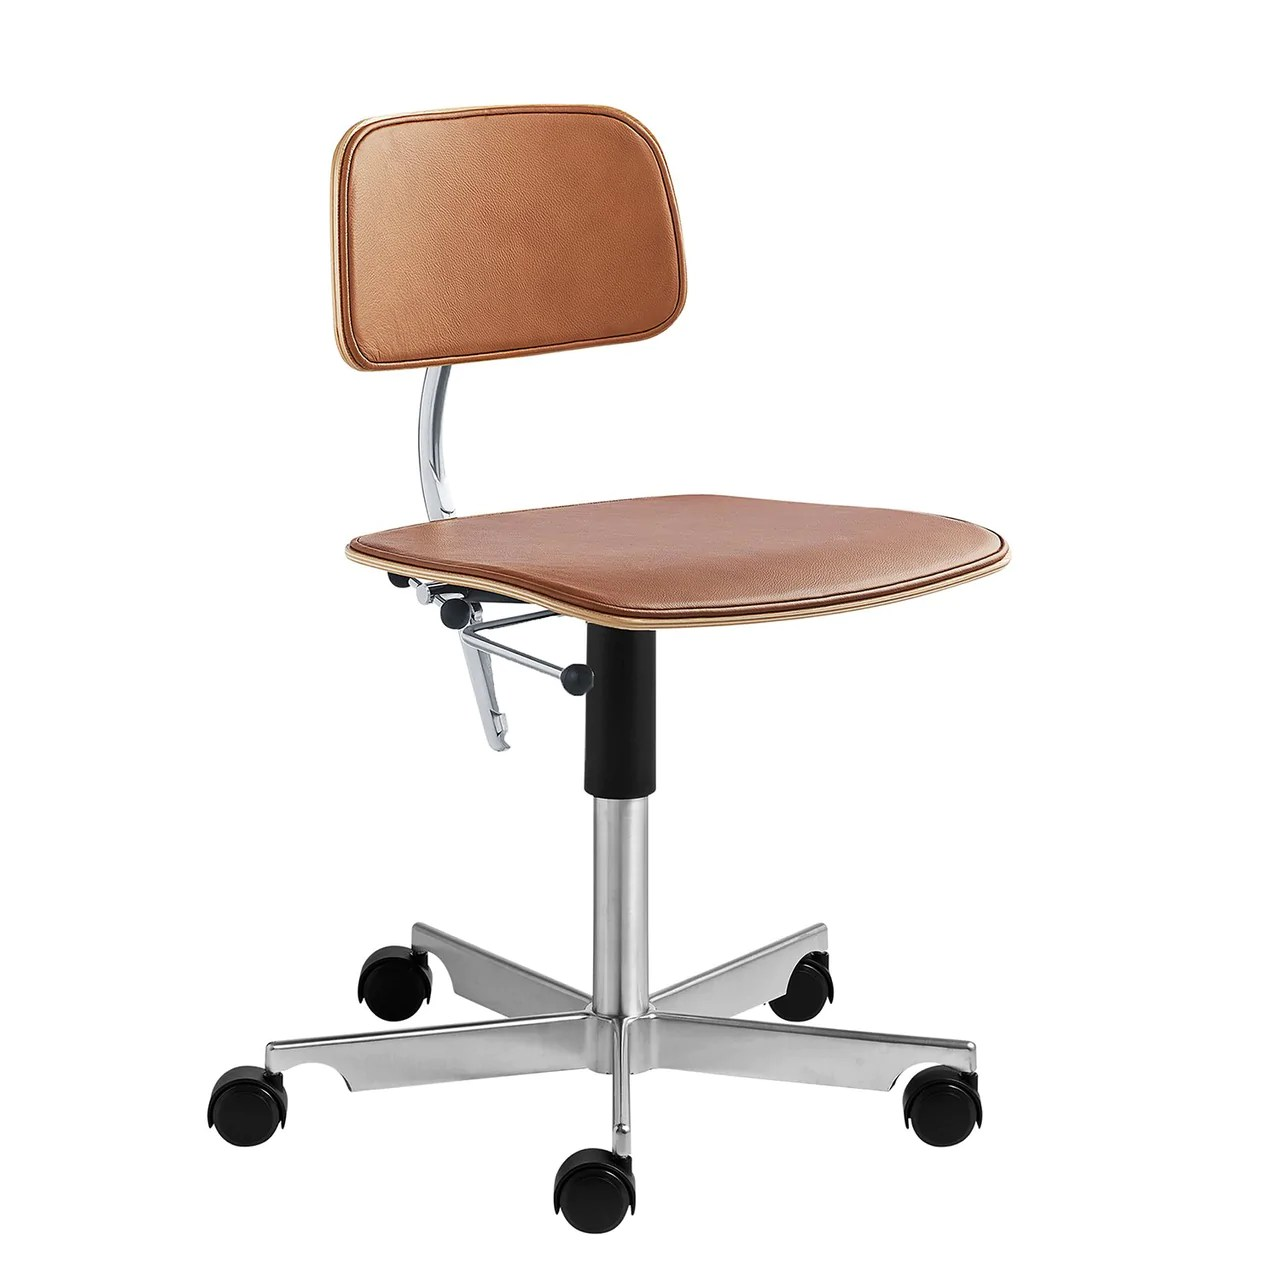 Kevi Chair Kevi Chair 2533 Wood Buy Engelbrechts Online At A R